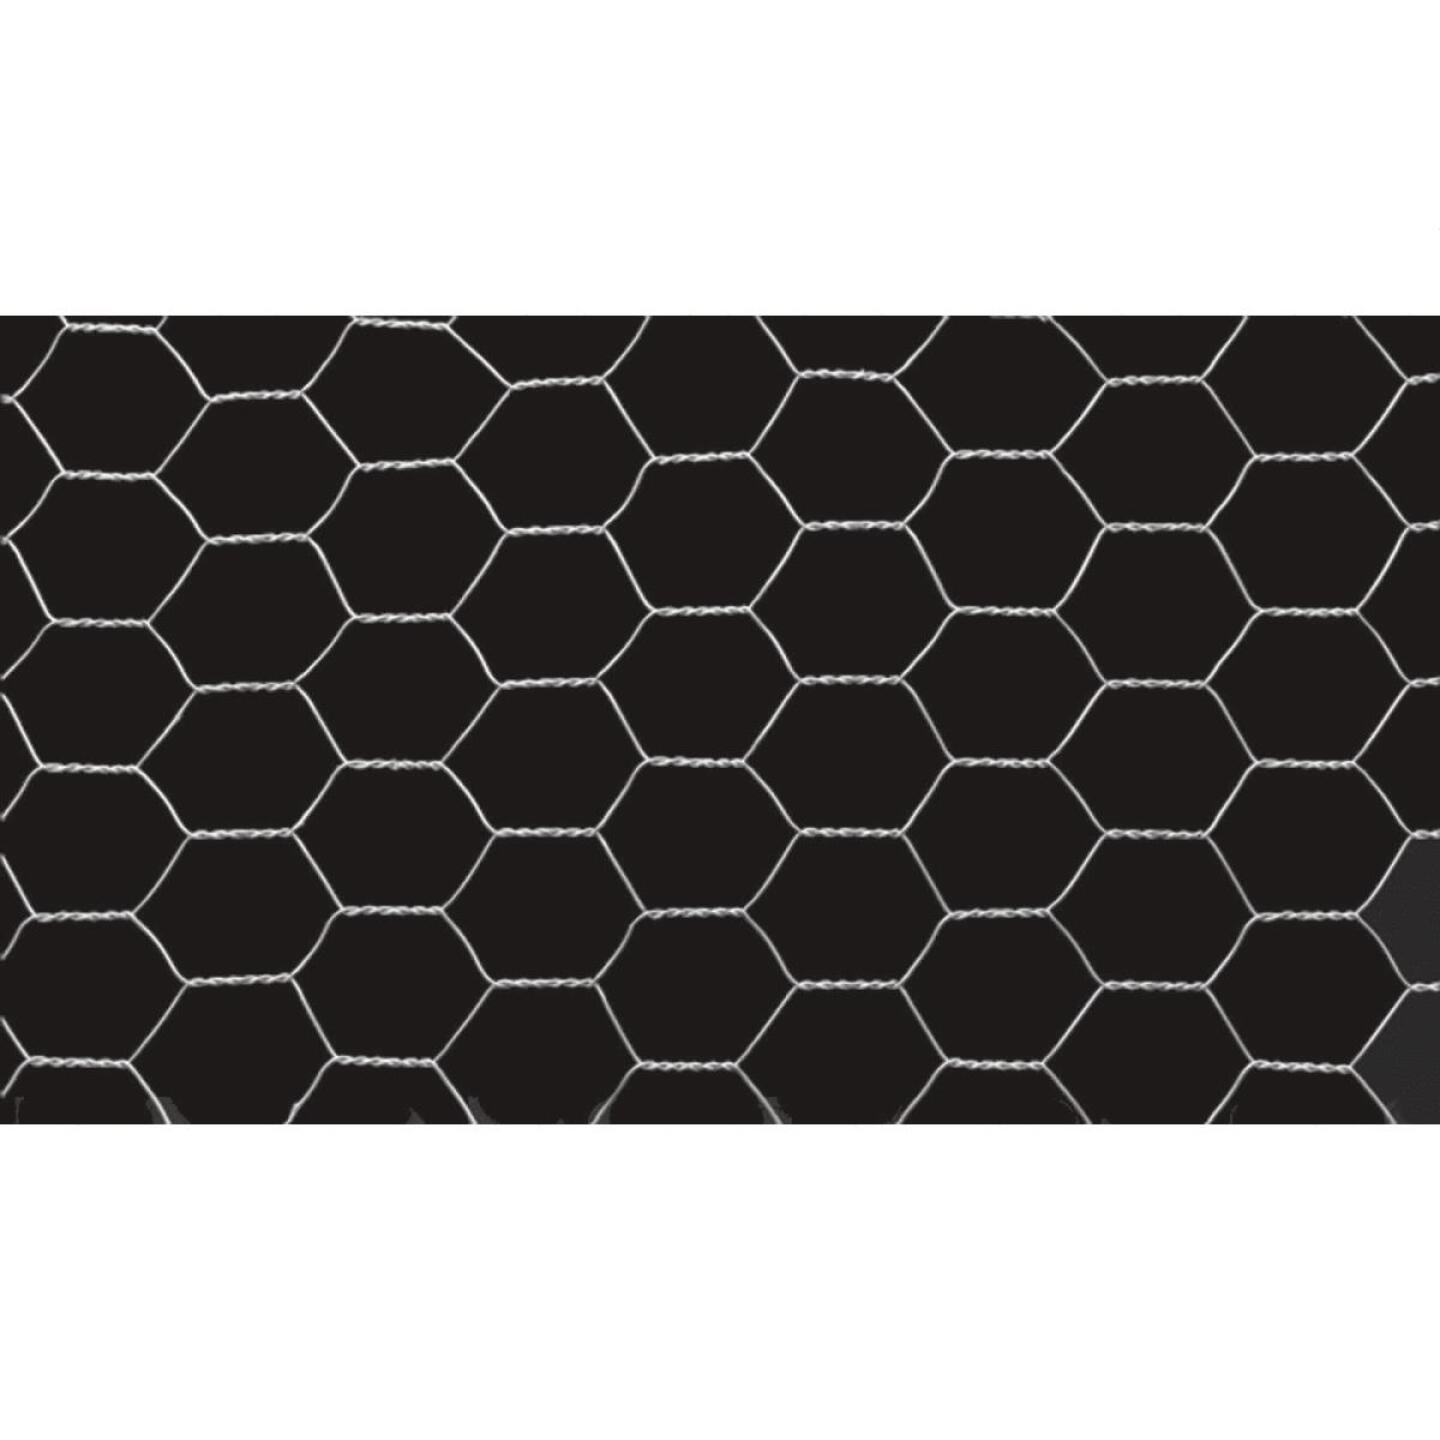 1 In. x 60 In. H. x 50 Ft. L. Hexagonal Wire Poultry Netting Image 3